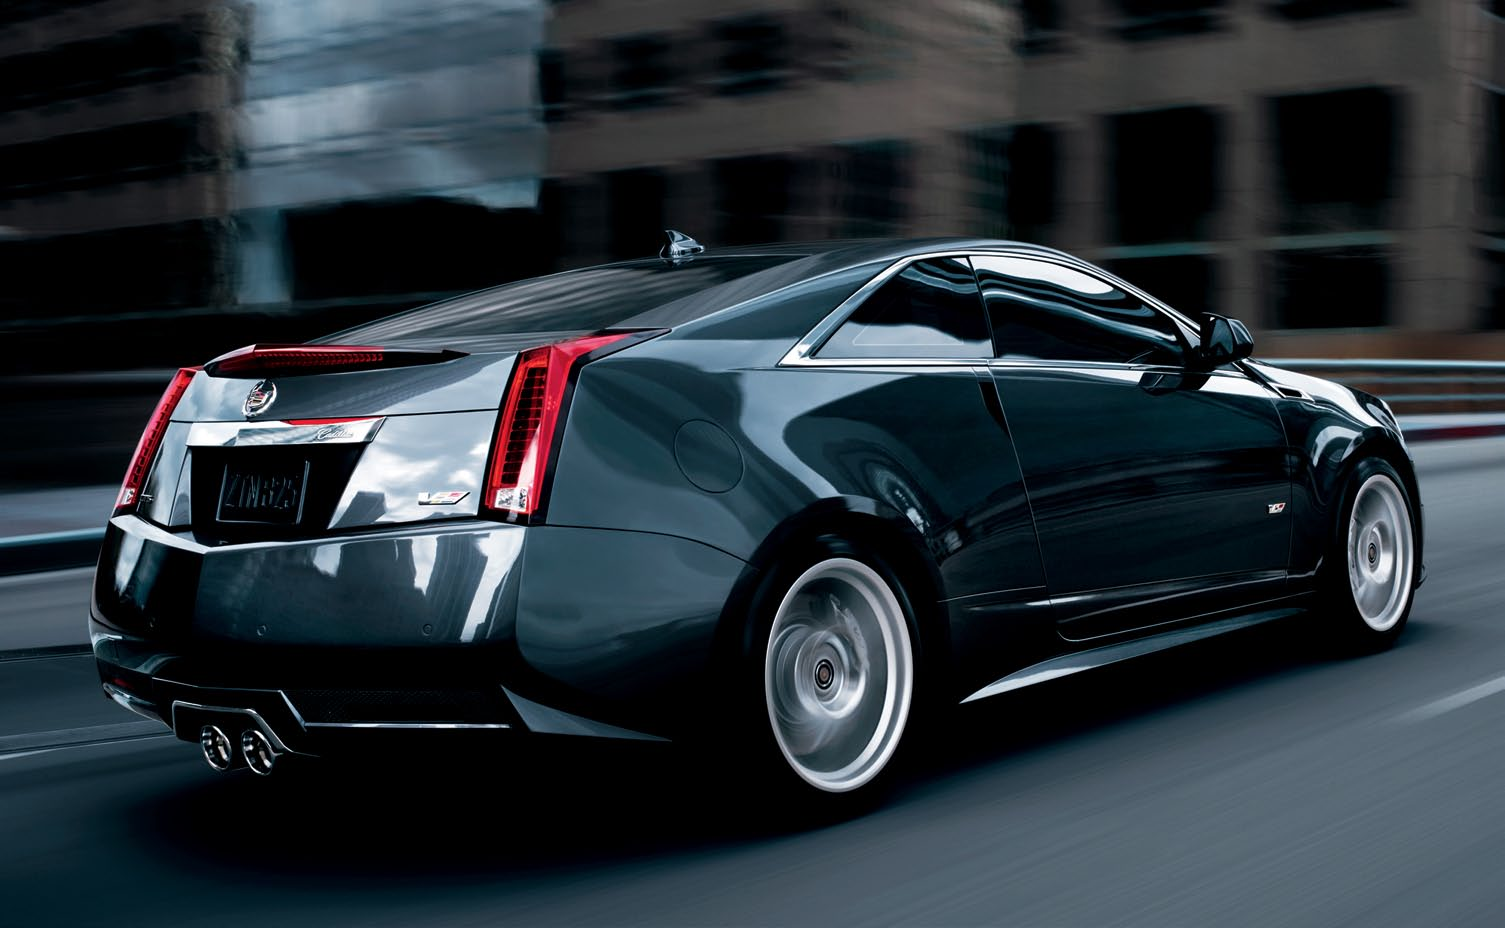 2011 Cadillac Cts Coupe Hot Car Pictures